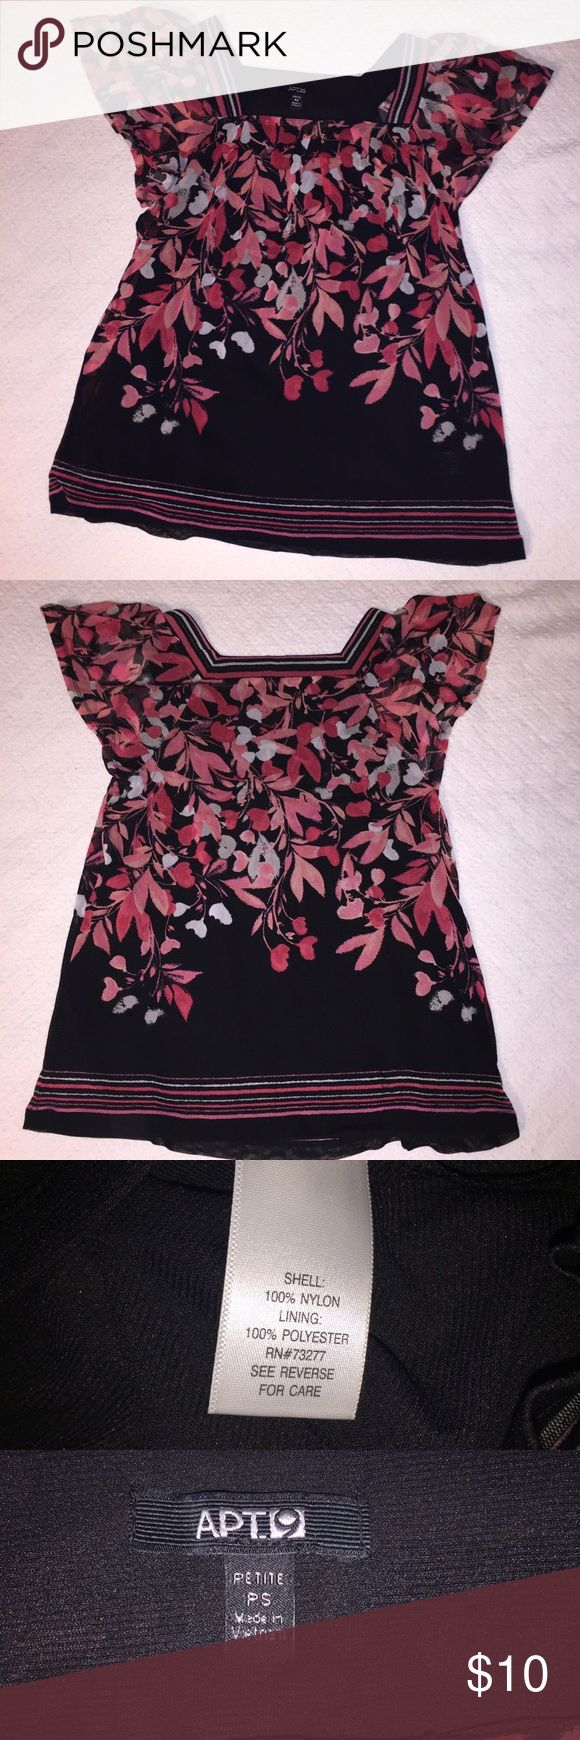 Apt 9 Small Petite womens dress shirt new no tags Apt 9 Small Petite womens dress shirt new without tags. I never had a chance to wear this. Black with pink floral design. Loose fit. Layers of flowey sheer material. Excellent like new condition. Never worn. Apt. 9 Tops Blouses